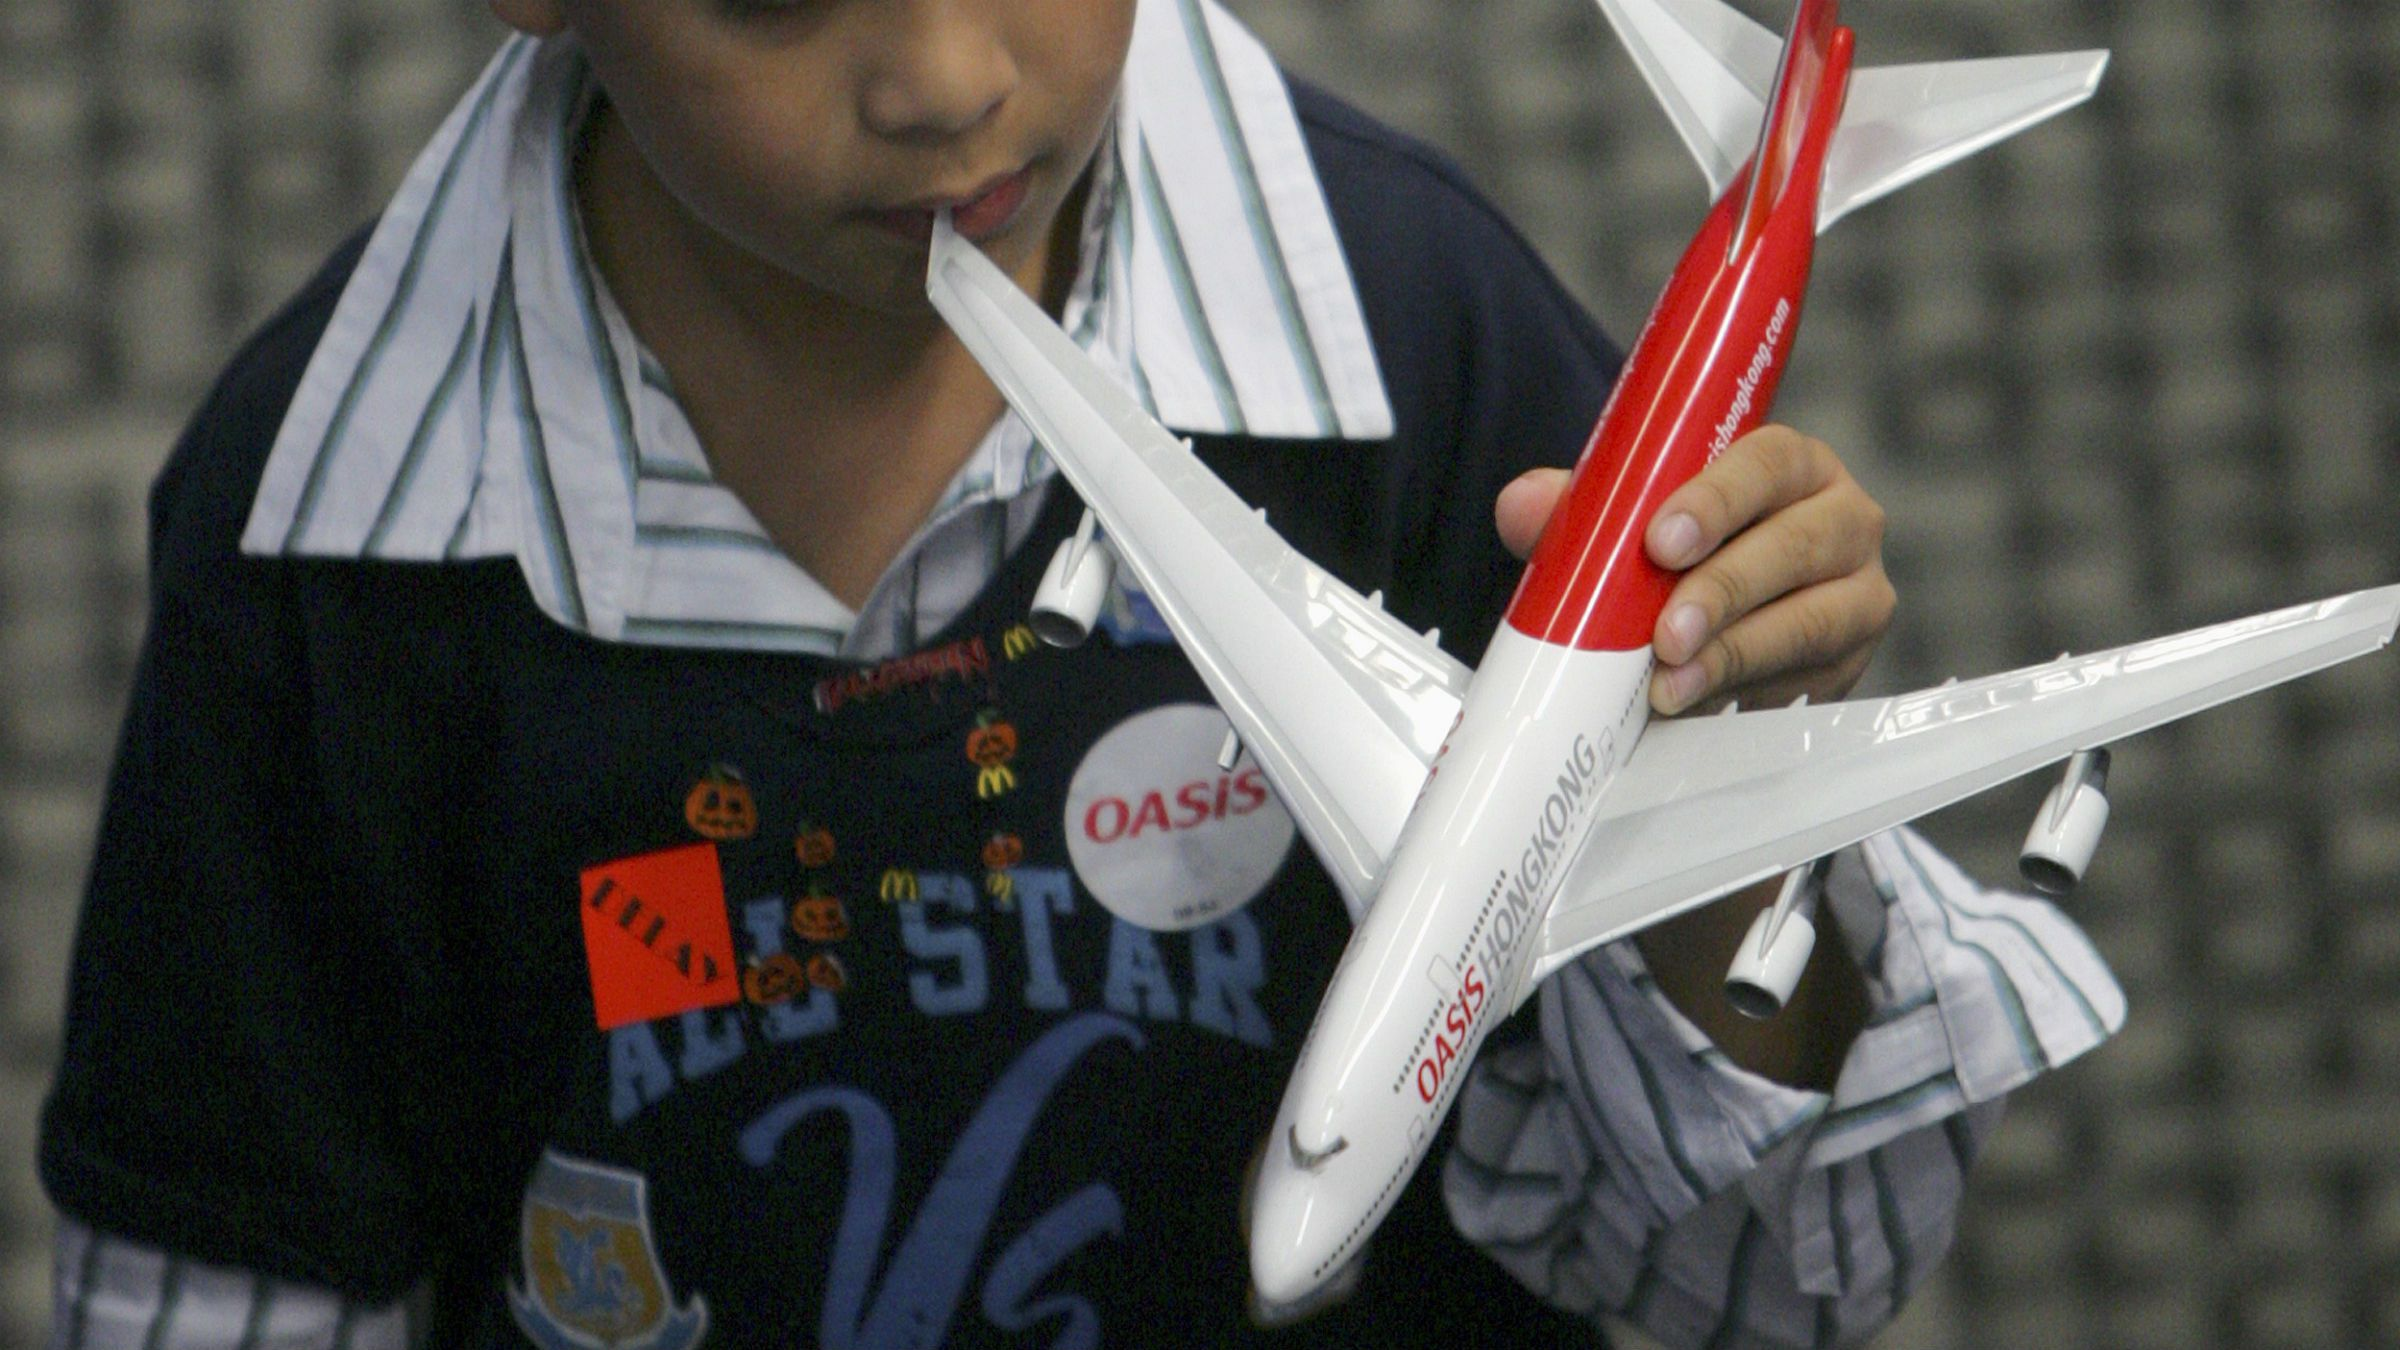 Child with model airplane